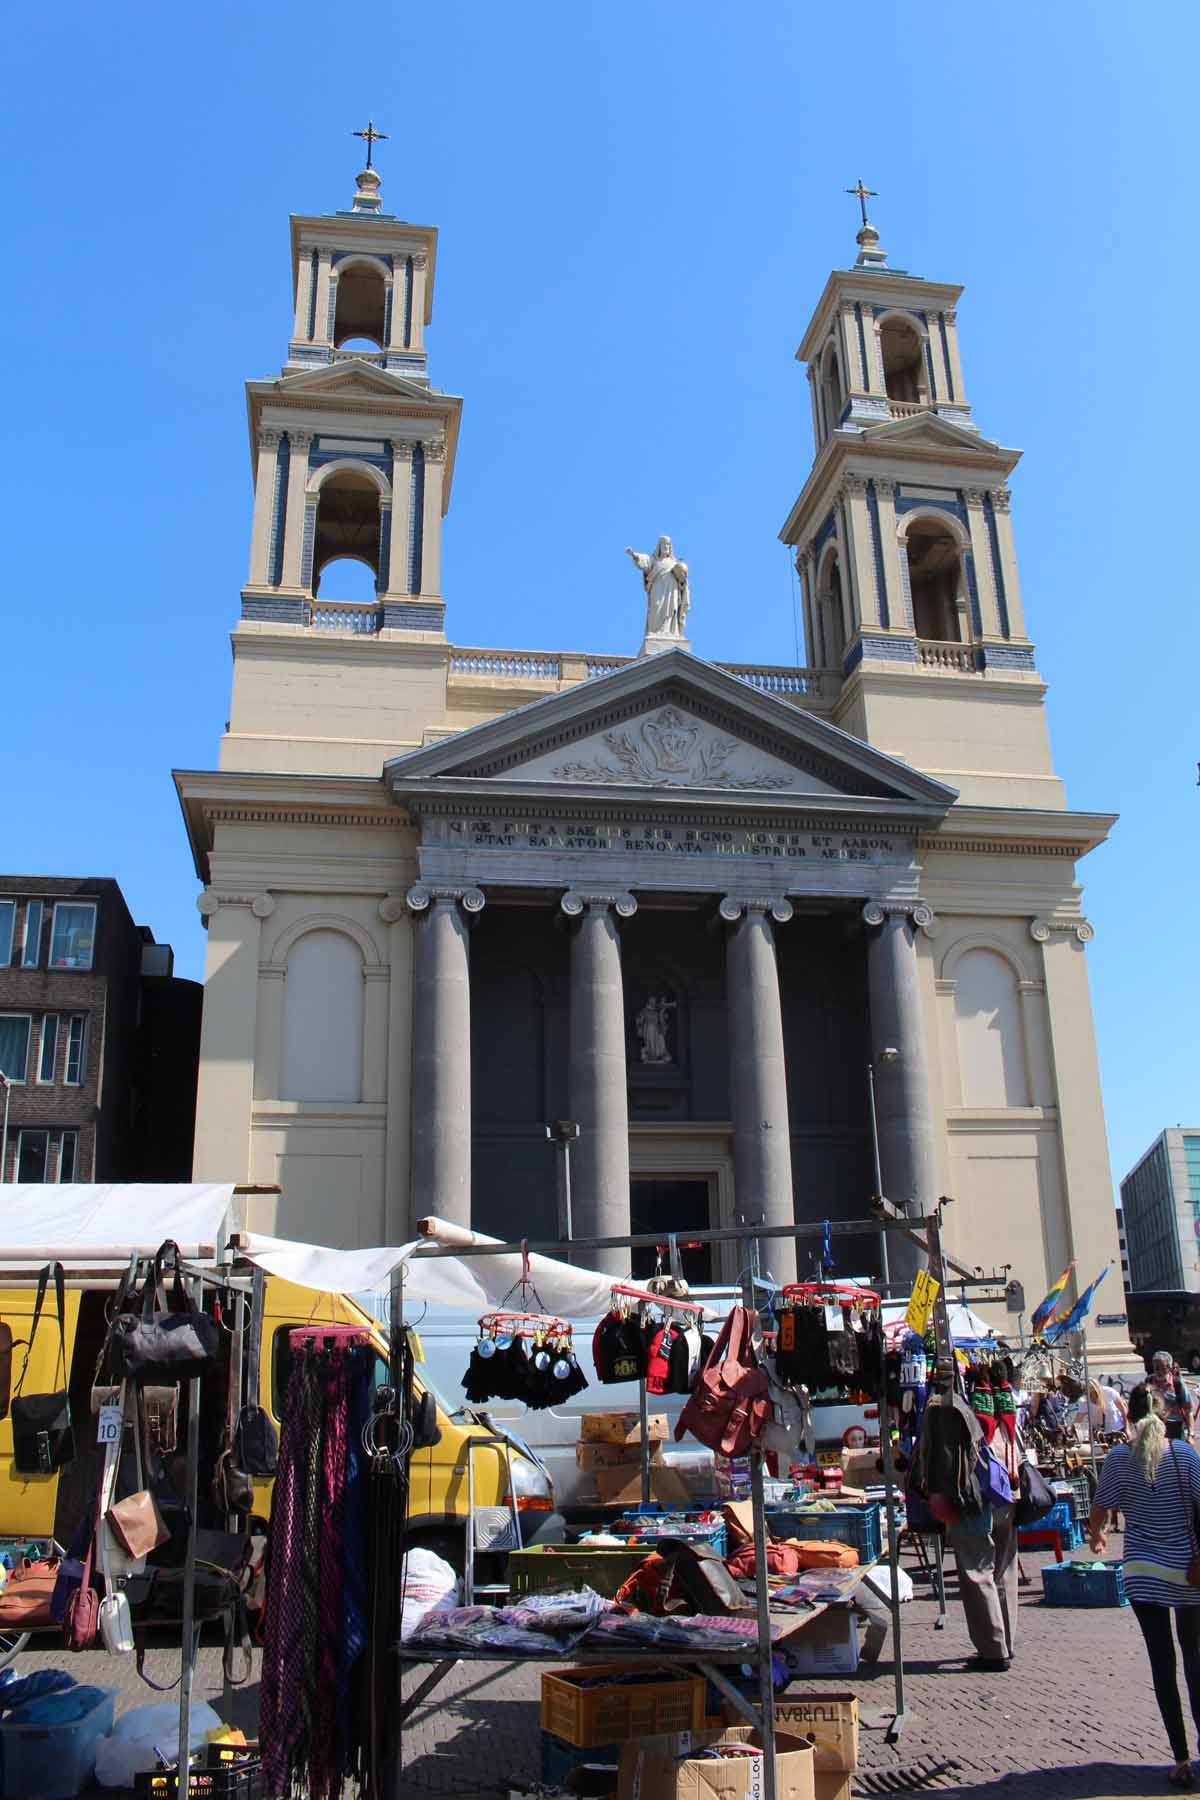 Amsterdam, Sant egidio church, market